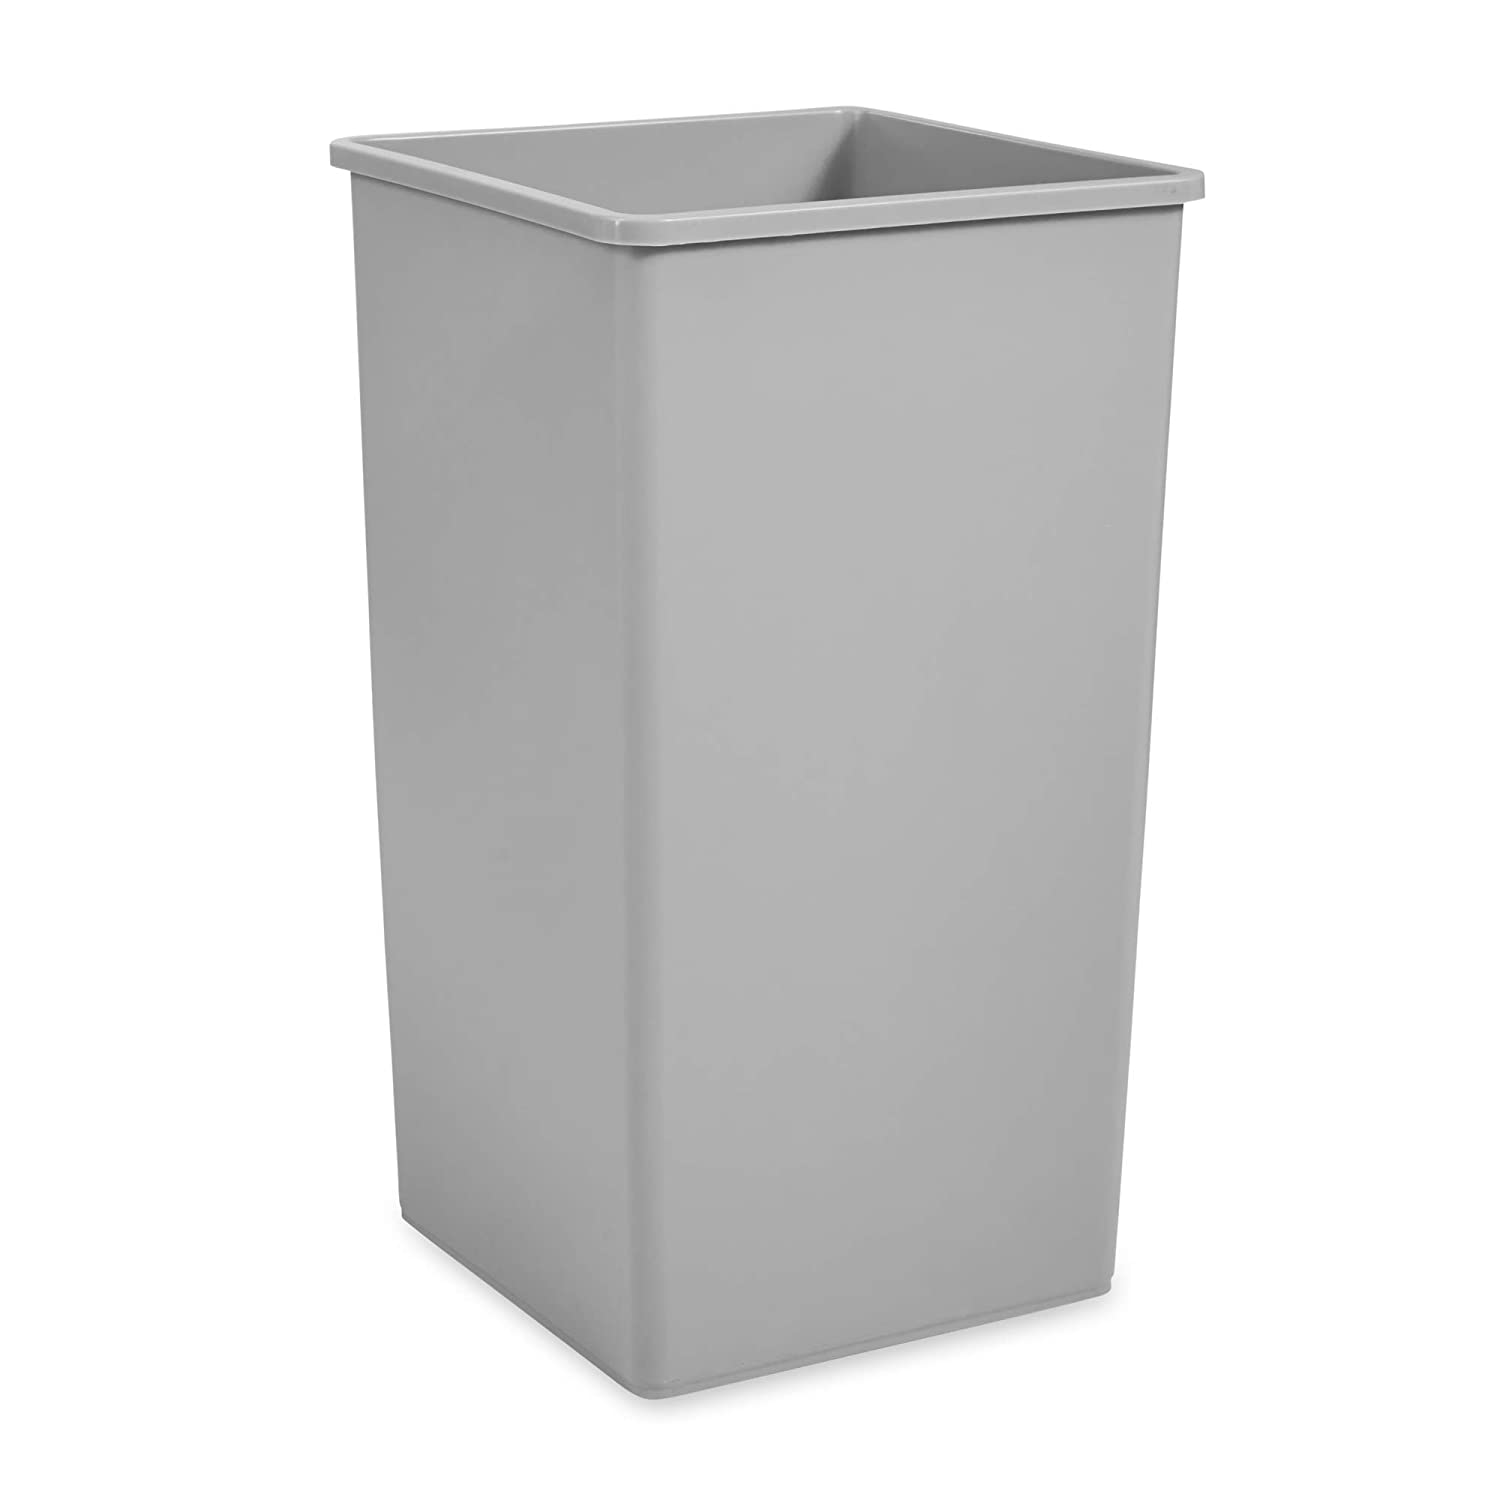 Rubbermaid Commercial Square 50-Gallon Untouchable Trash Can, Gray (FG395800GRAY)